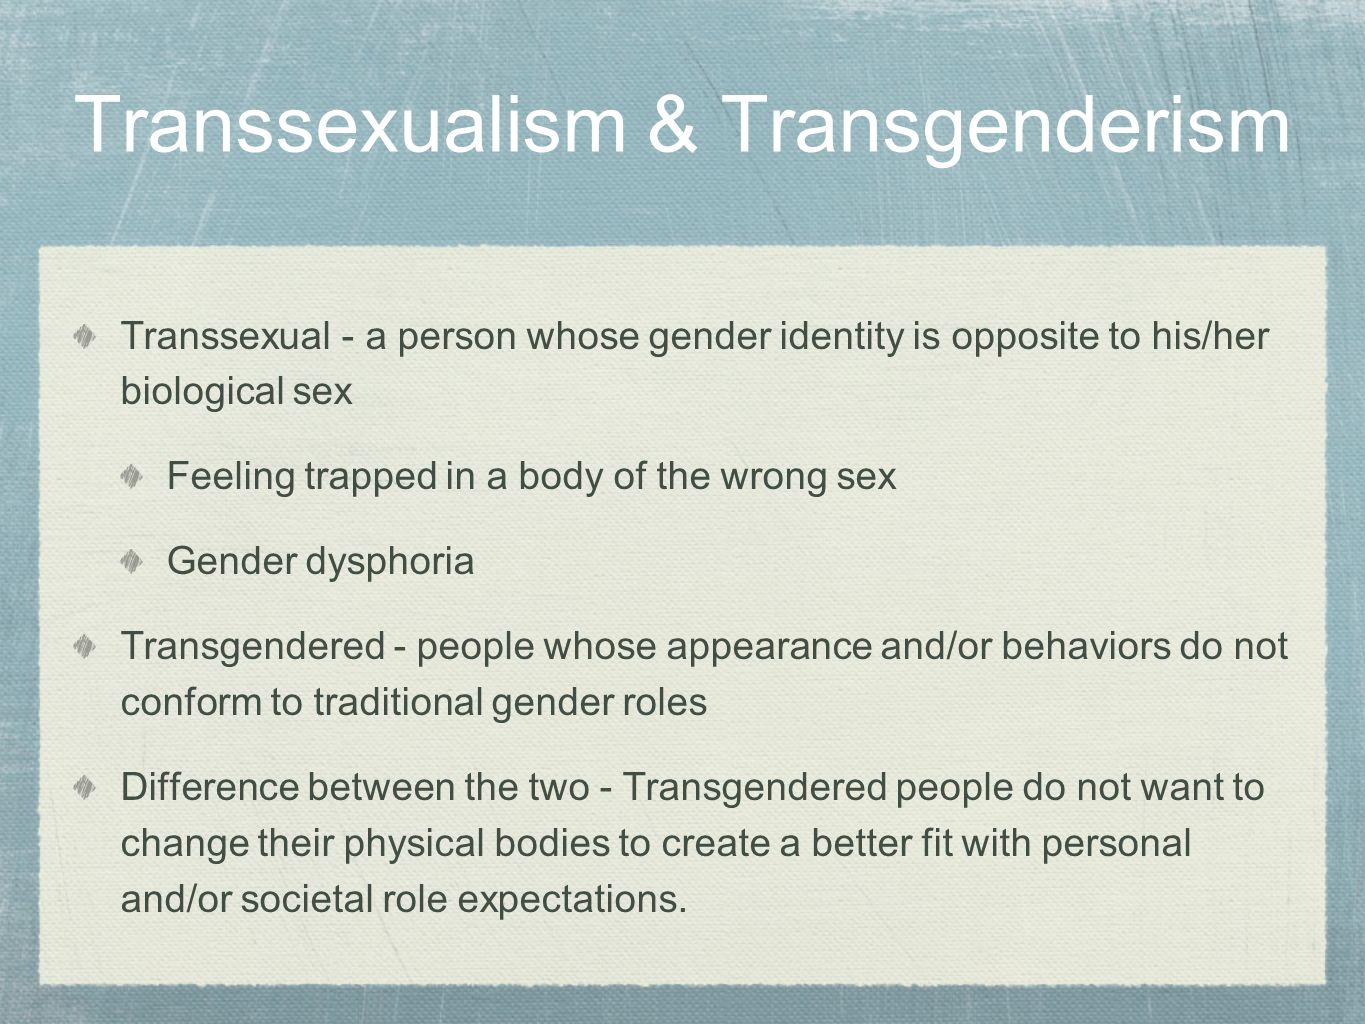 from Kole physical correlates with transsexual transgender gender dysphoria